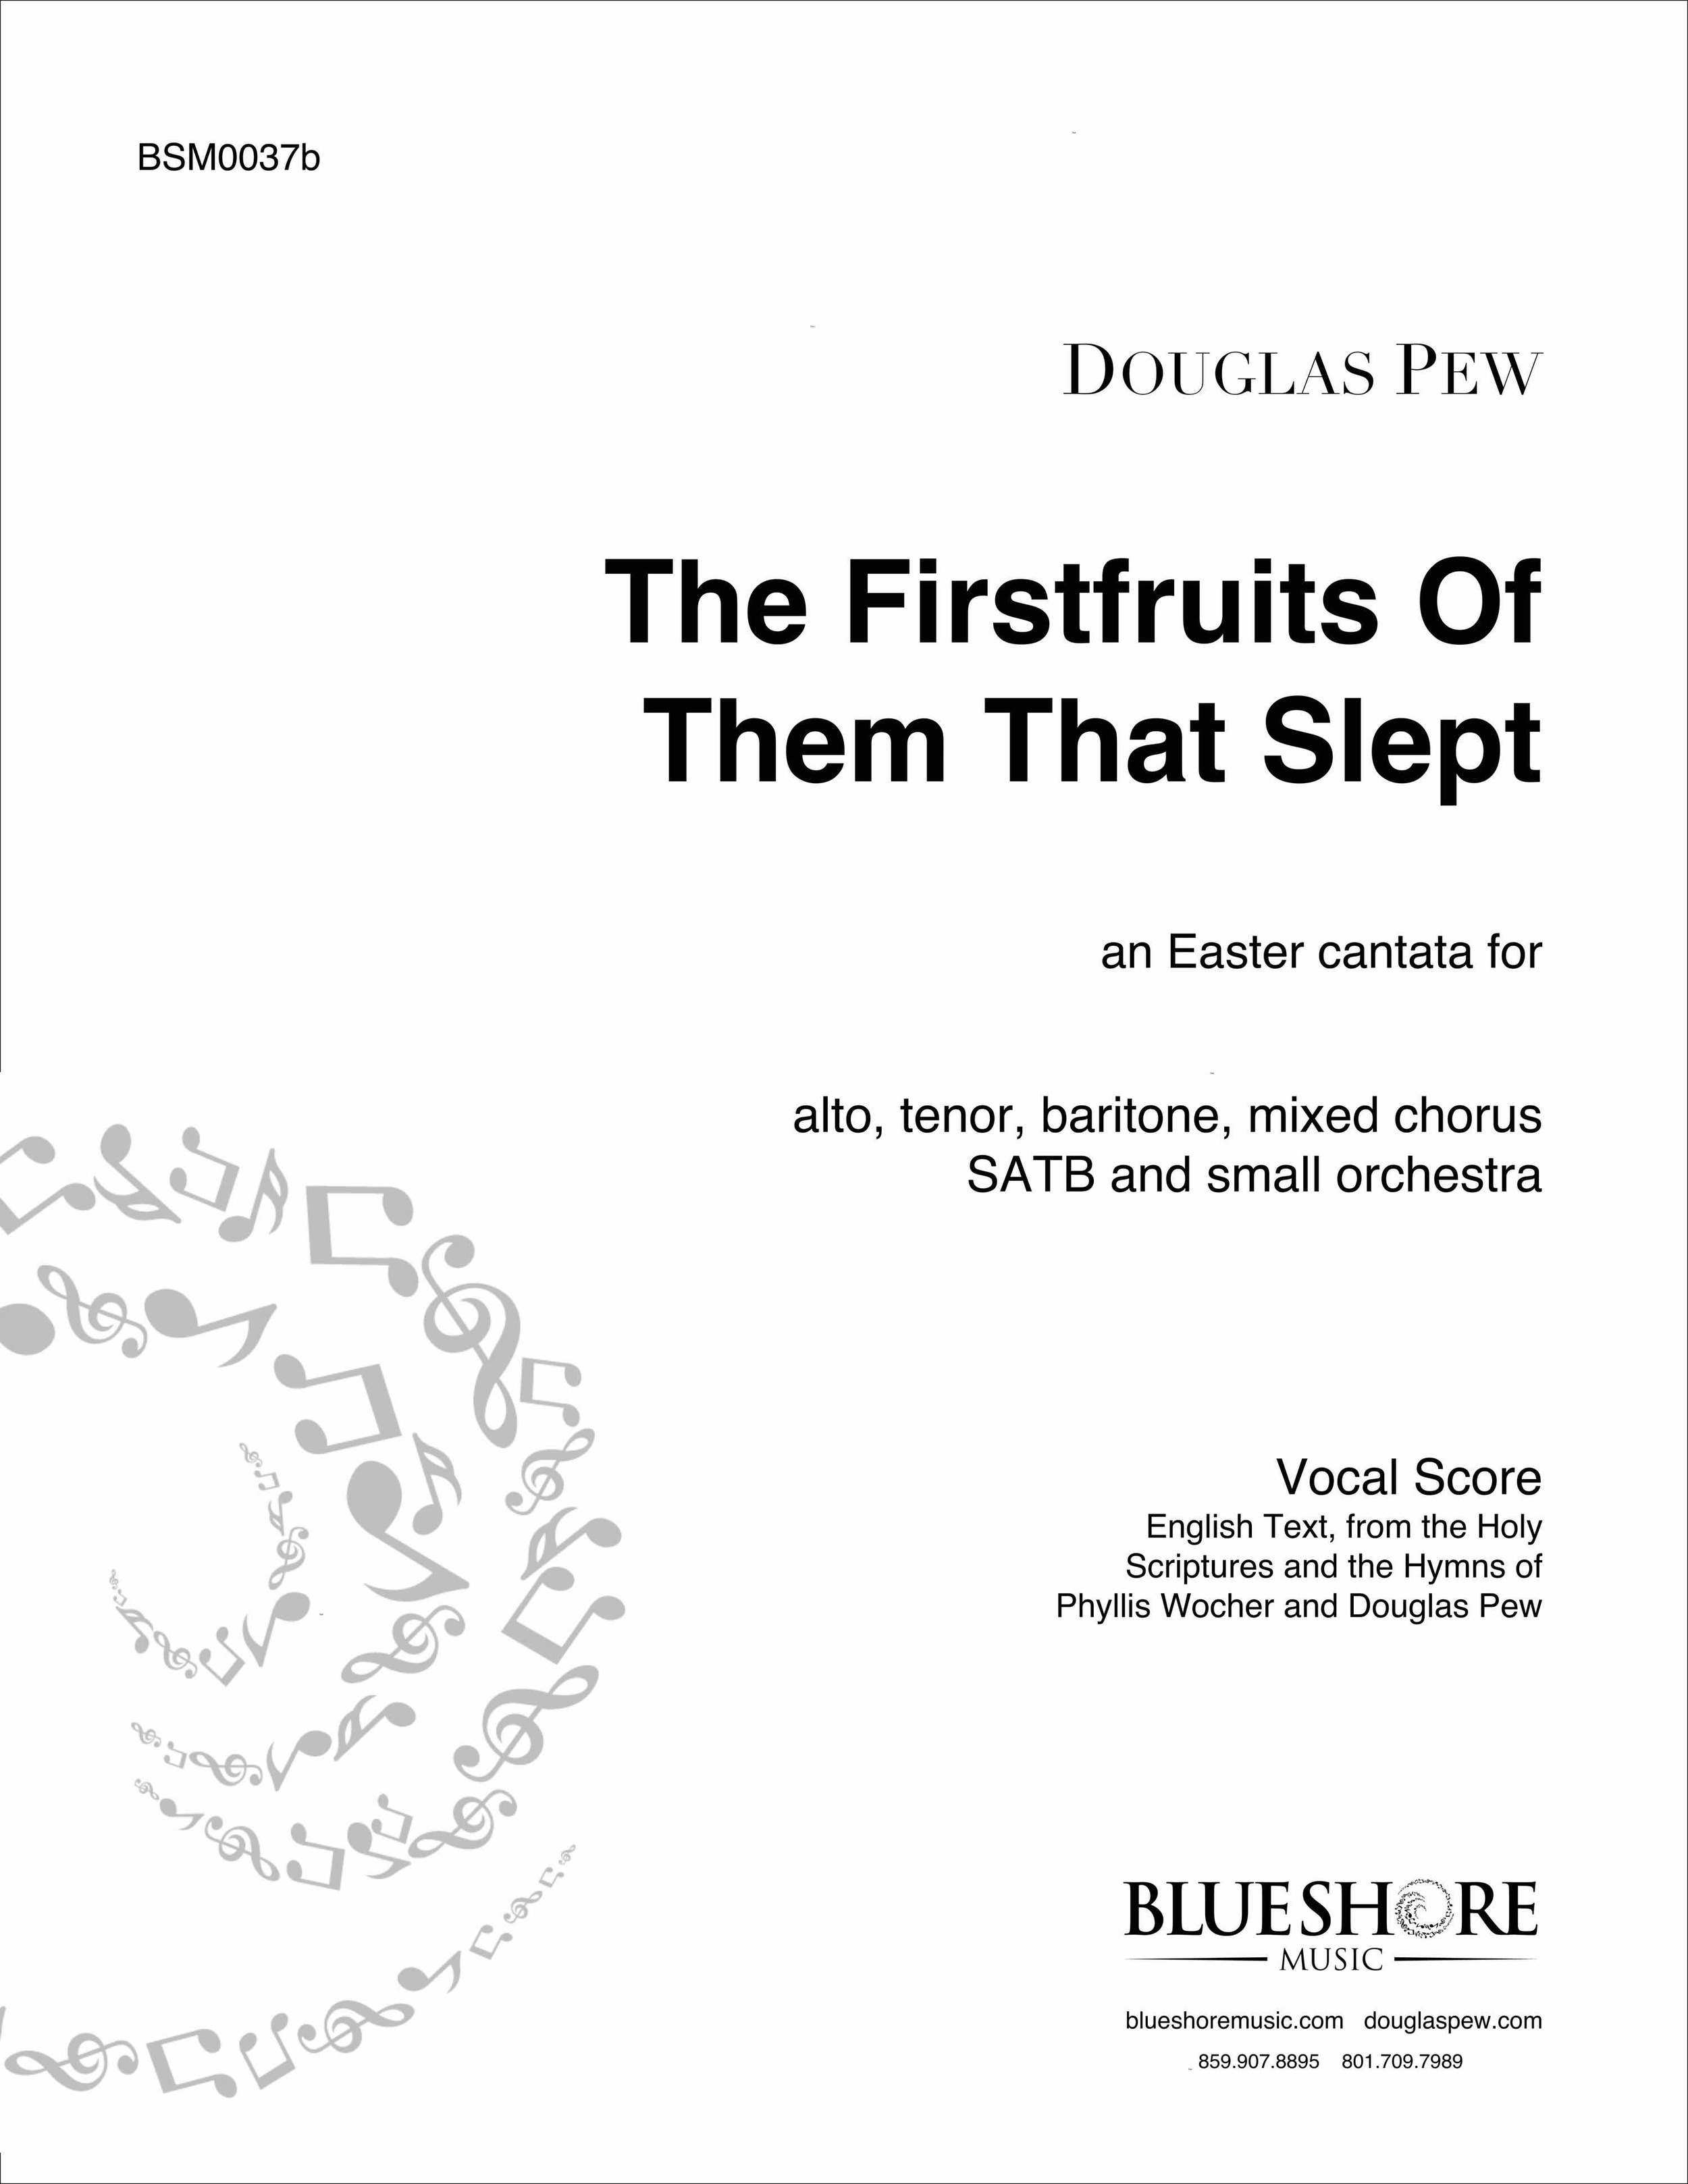 T     he Firstfruits of Them that Slept  , Easter Cantata for Soloists, Chorus, and Chamber Orchestra